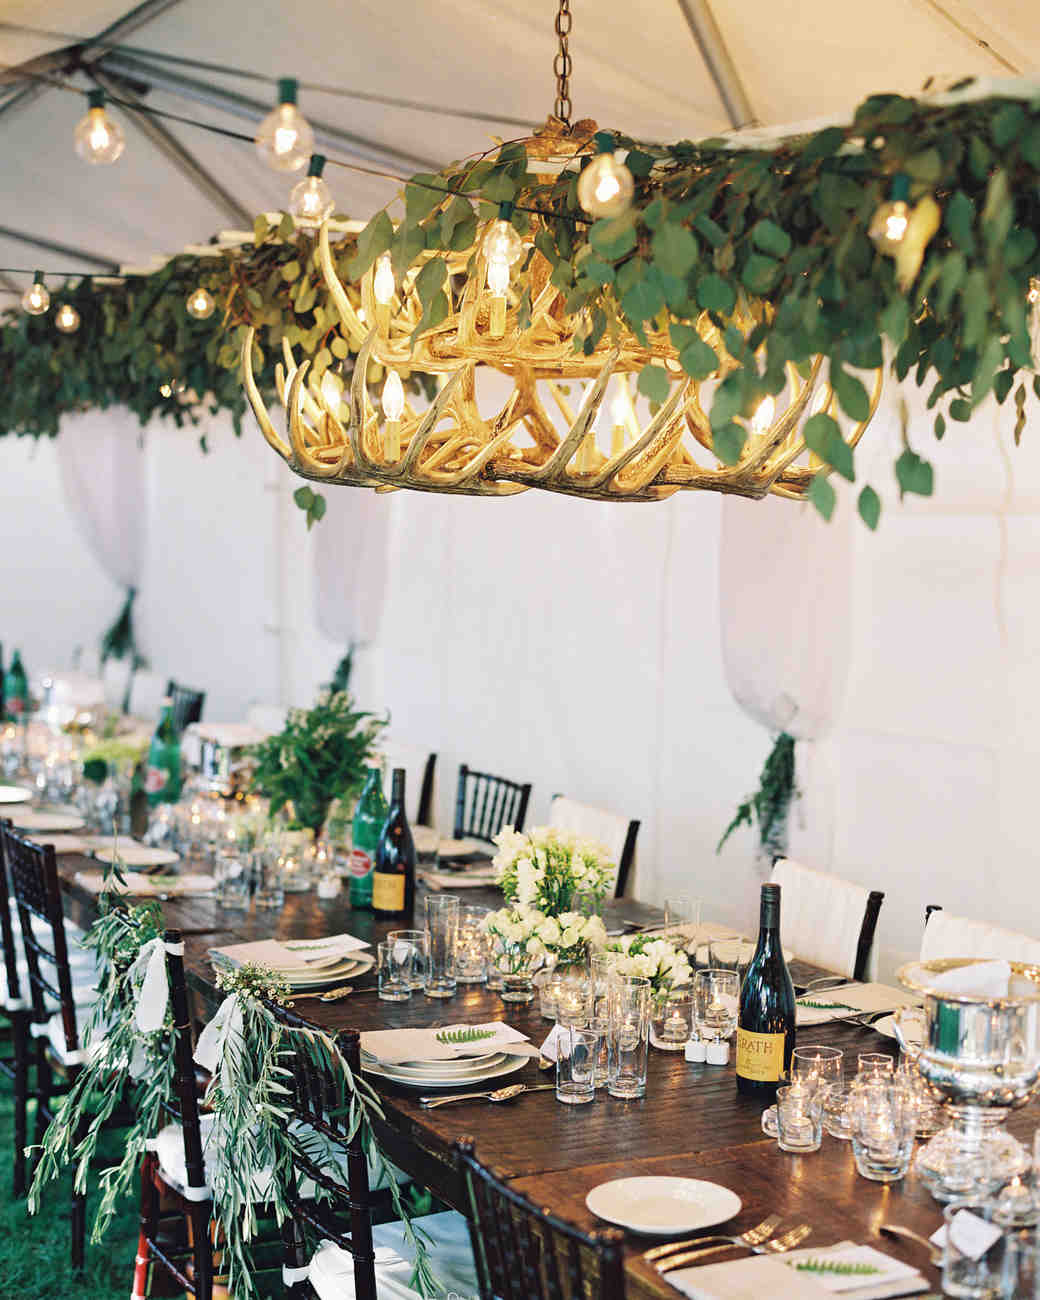 handmade wooden chairs ted bundy electric chair 42 stunning banquet tables for your reception | martha stewart weddings